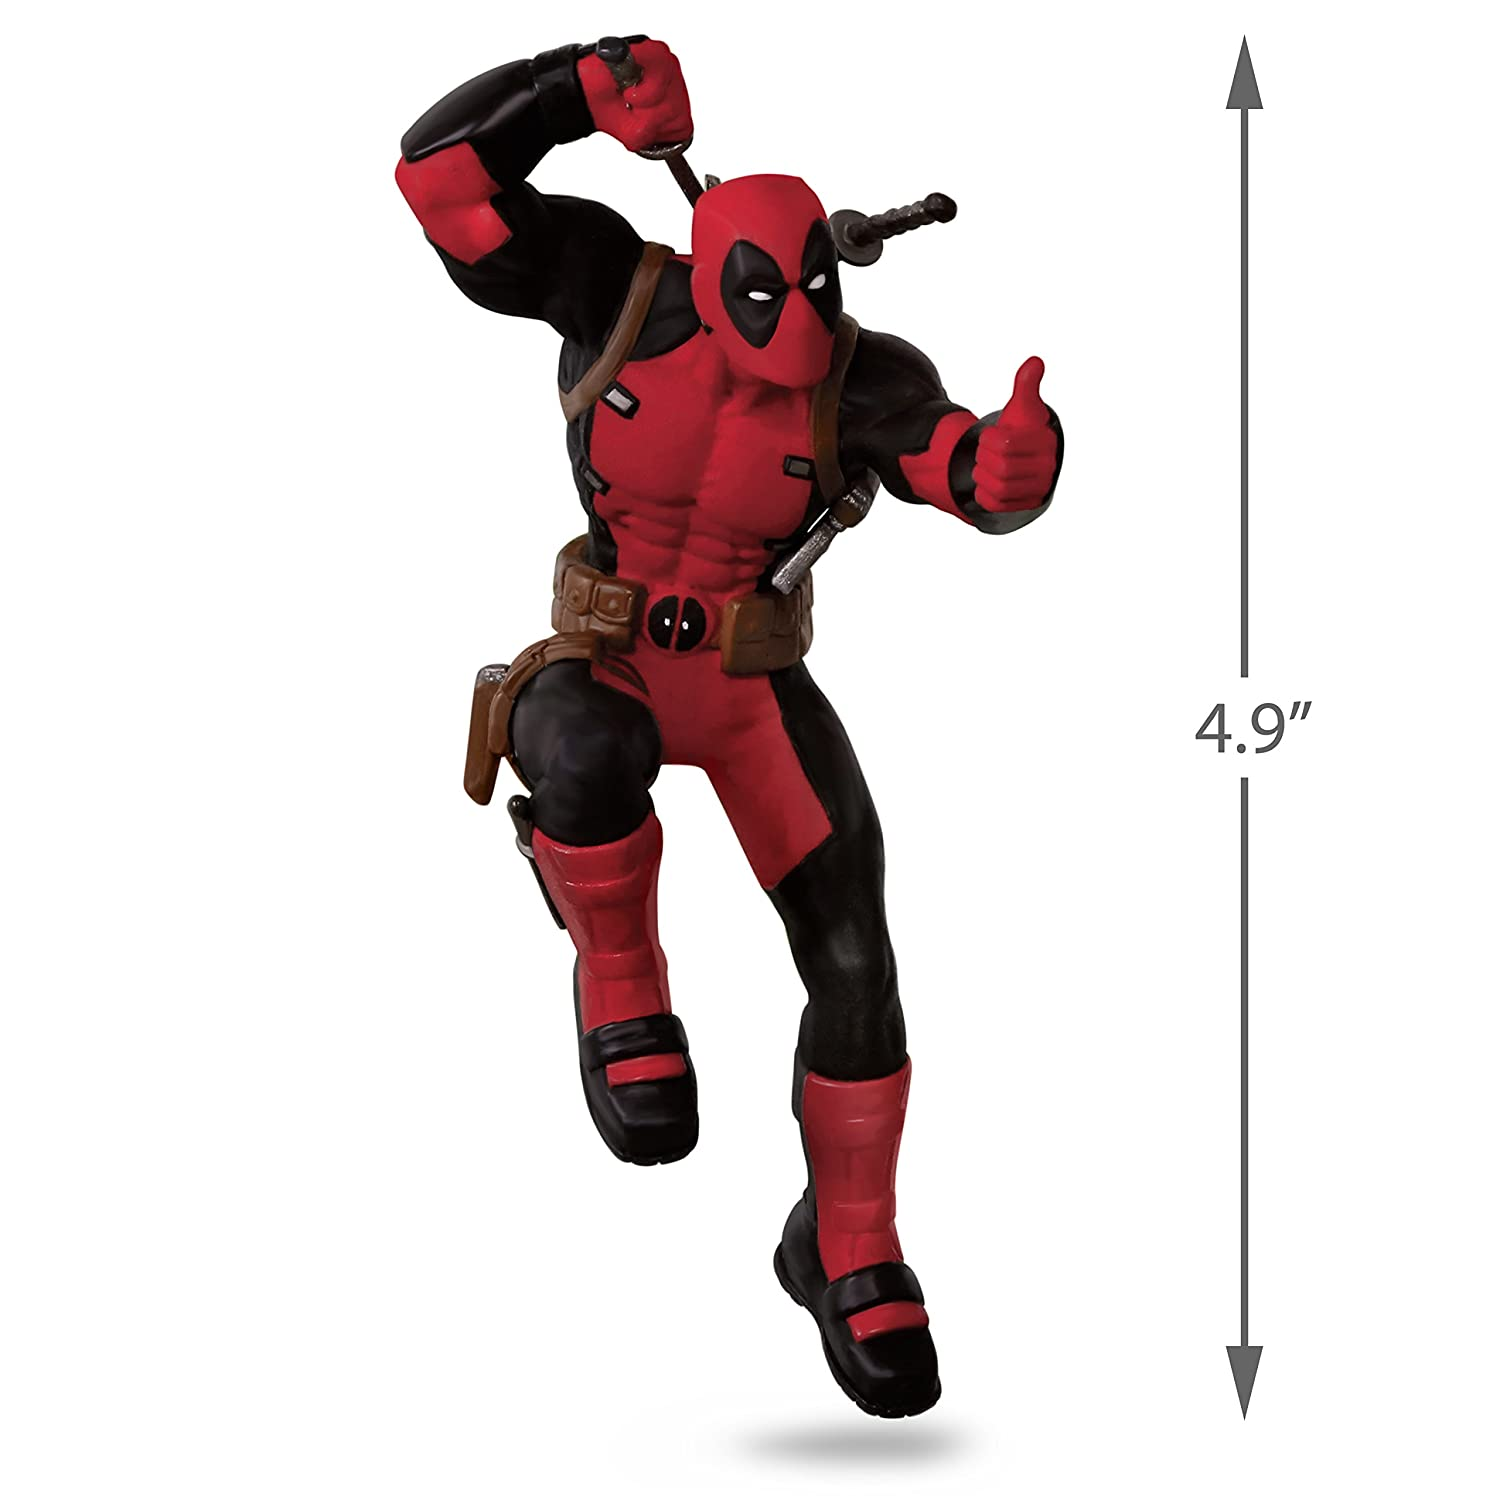 Amazon.com: Hallmark Keepsake 2017 Deadpool Christmas Ornament: Home ...